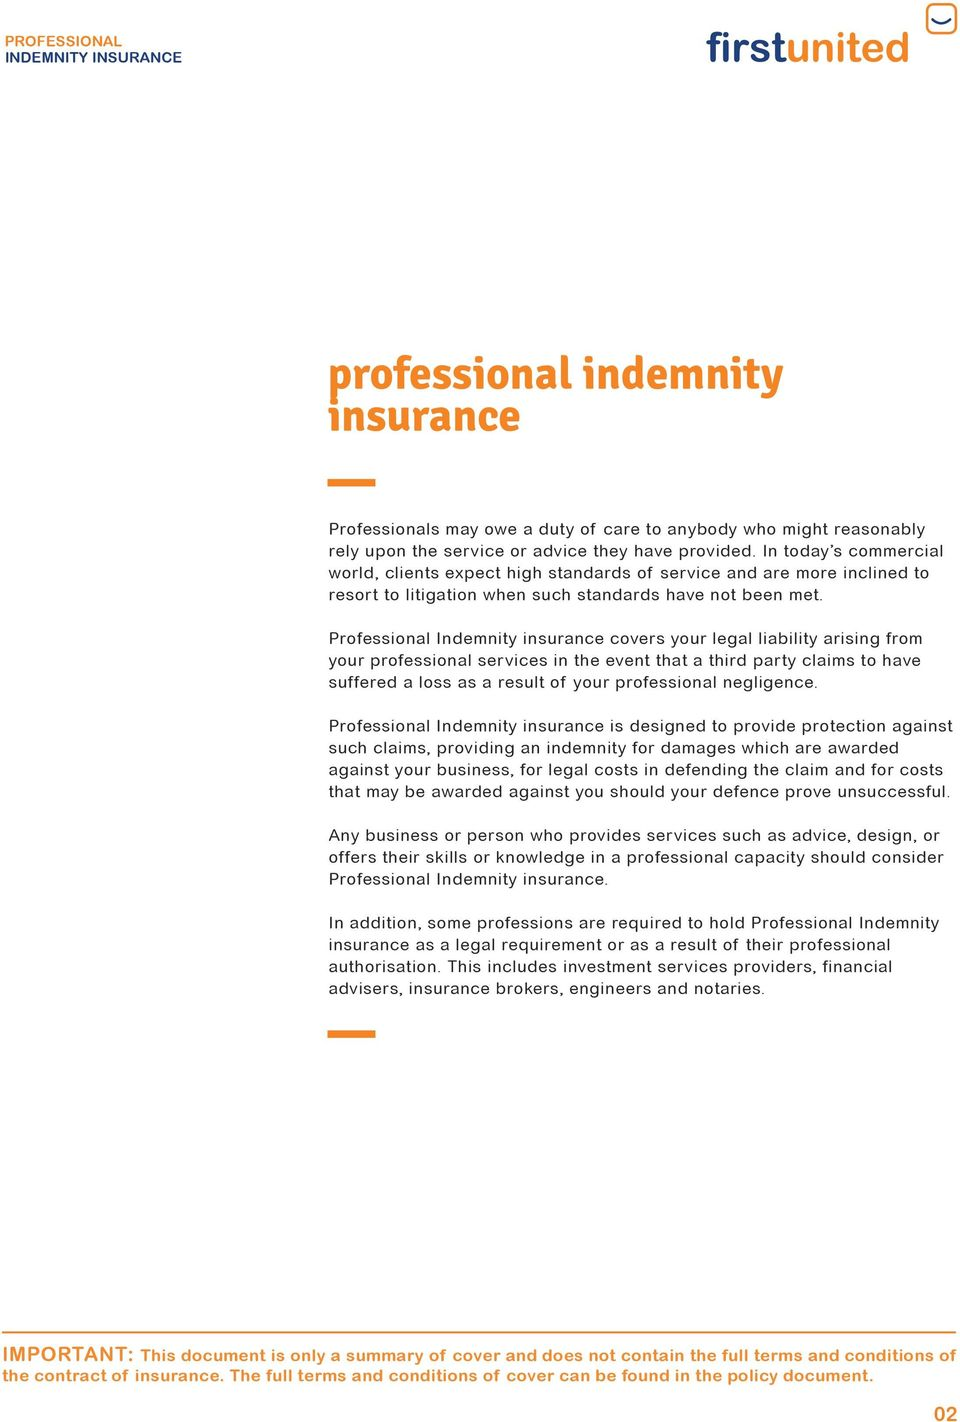 Professional Indemnity insurance covers your legal liability arising from your professional services in the event that a third party claims to have suffered a loss as a result of your professional